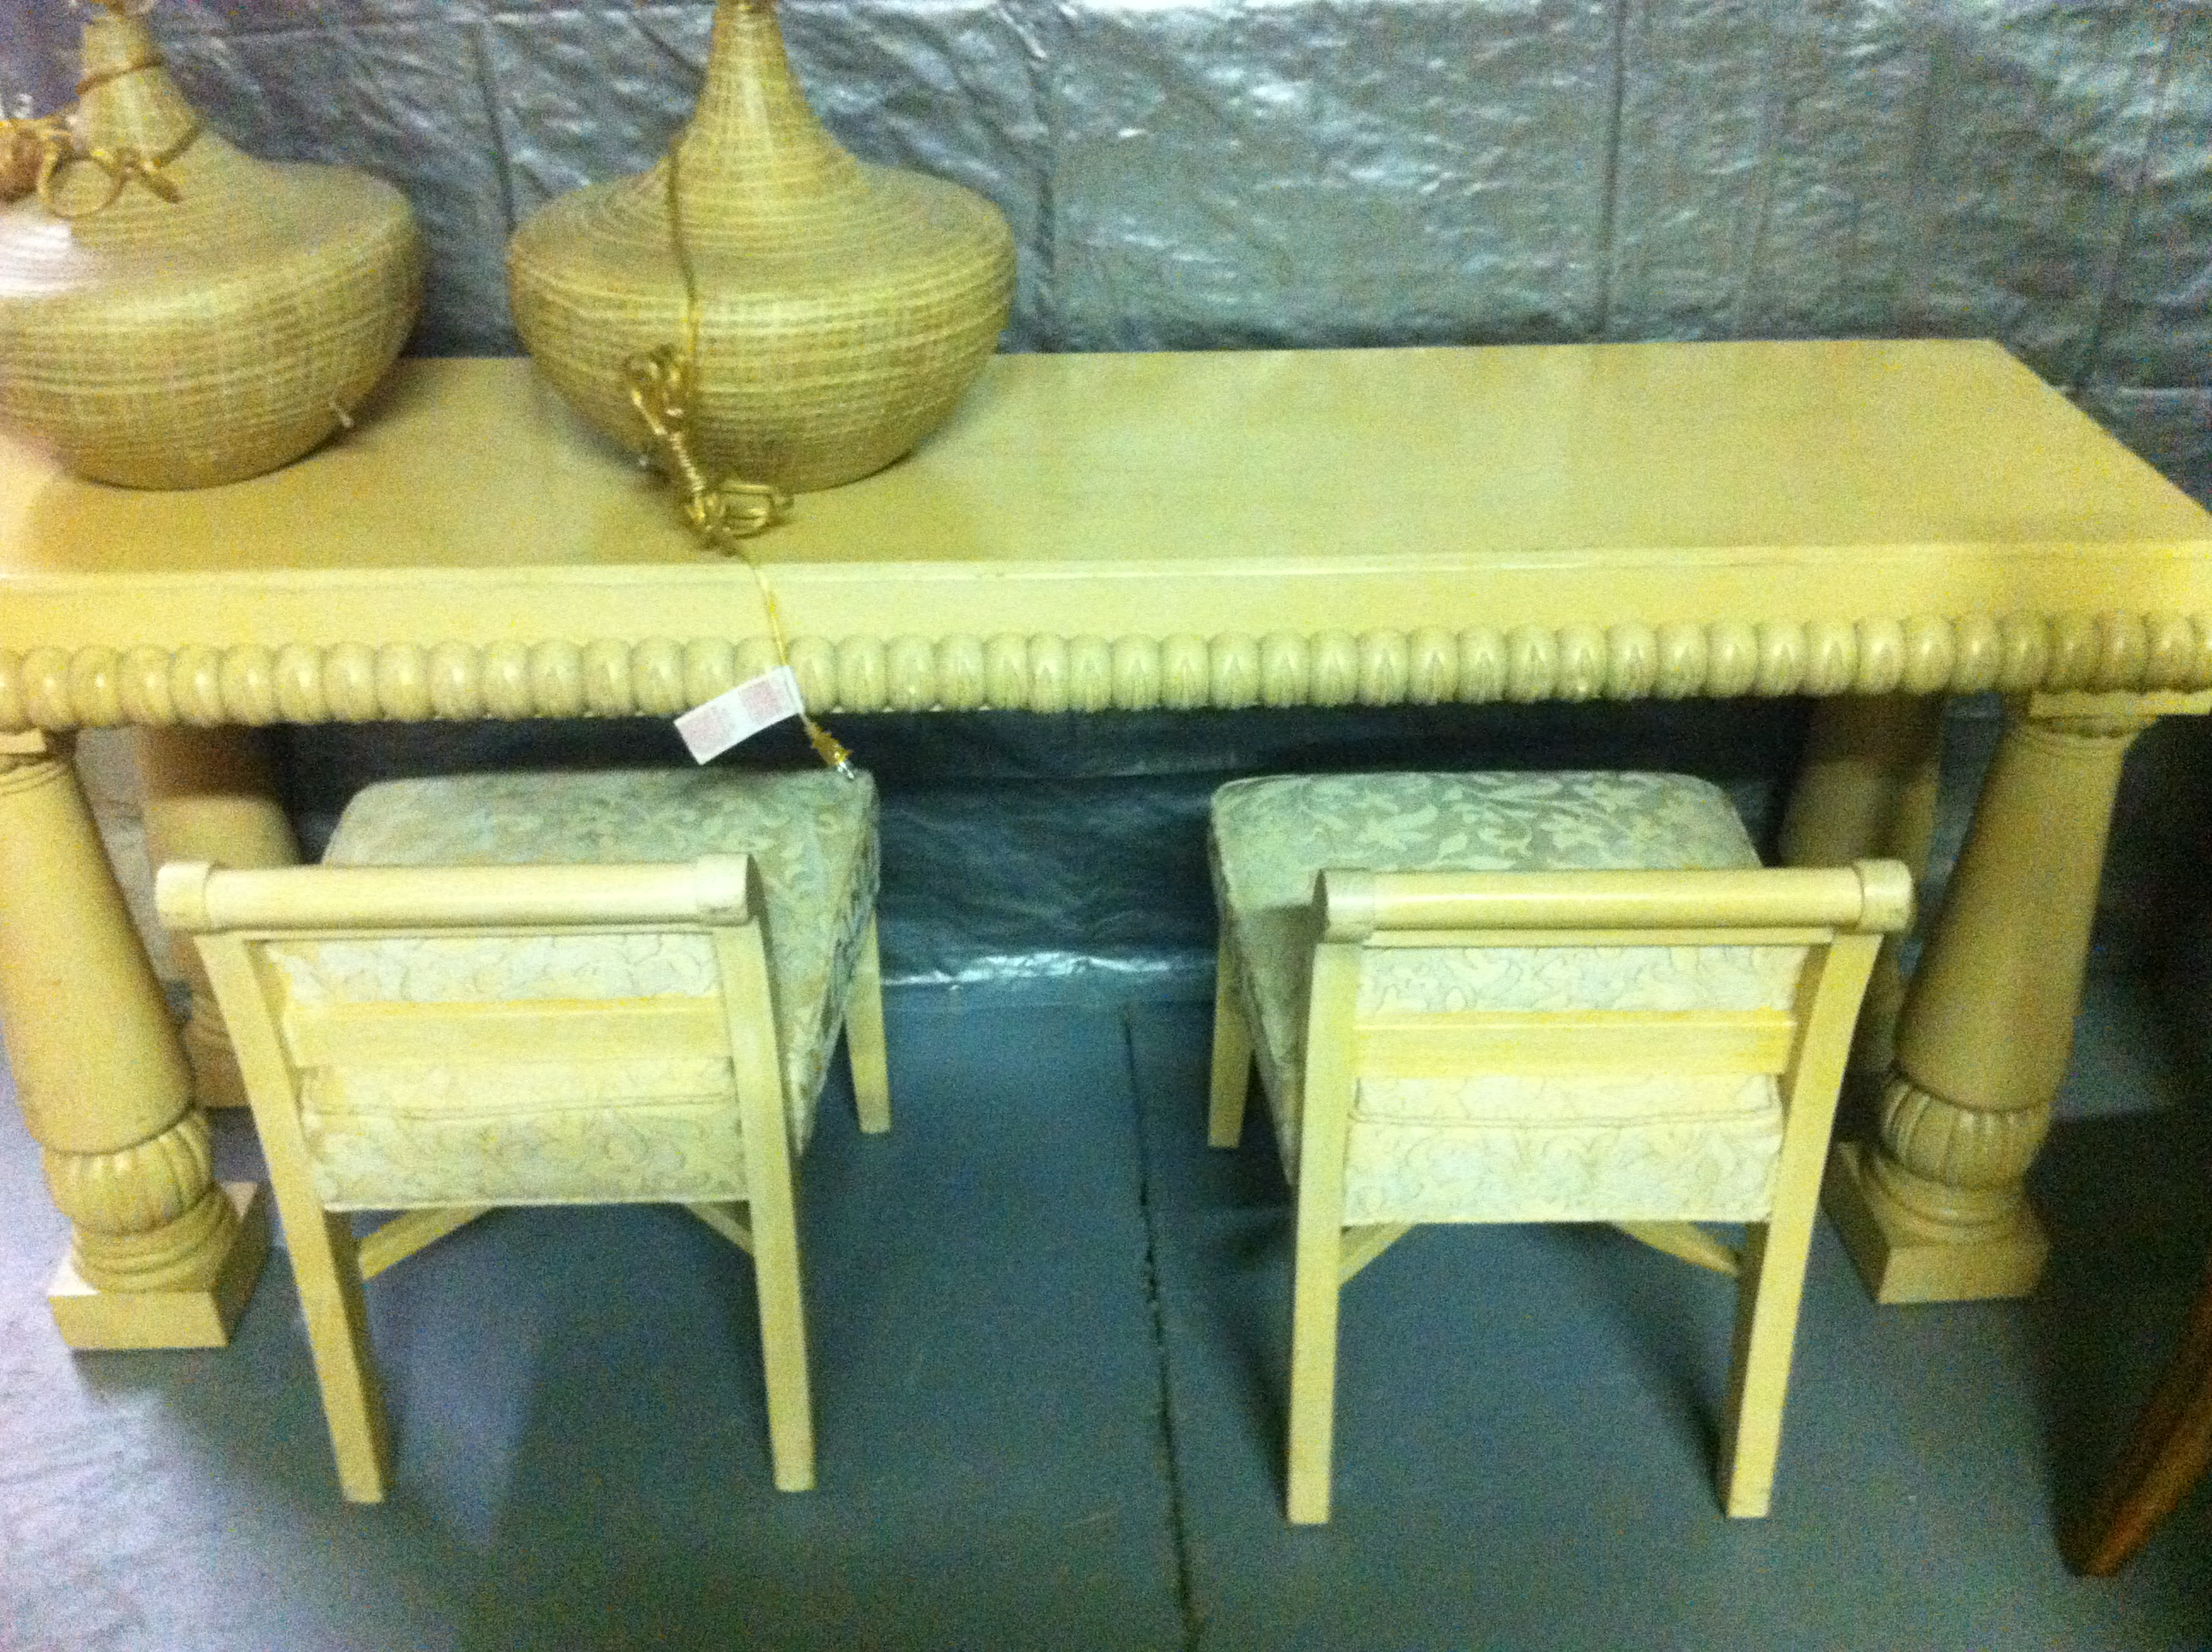 Sofa tables for sale in phoenix